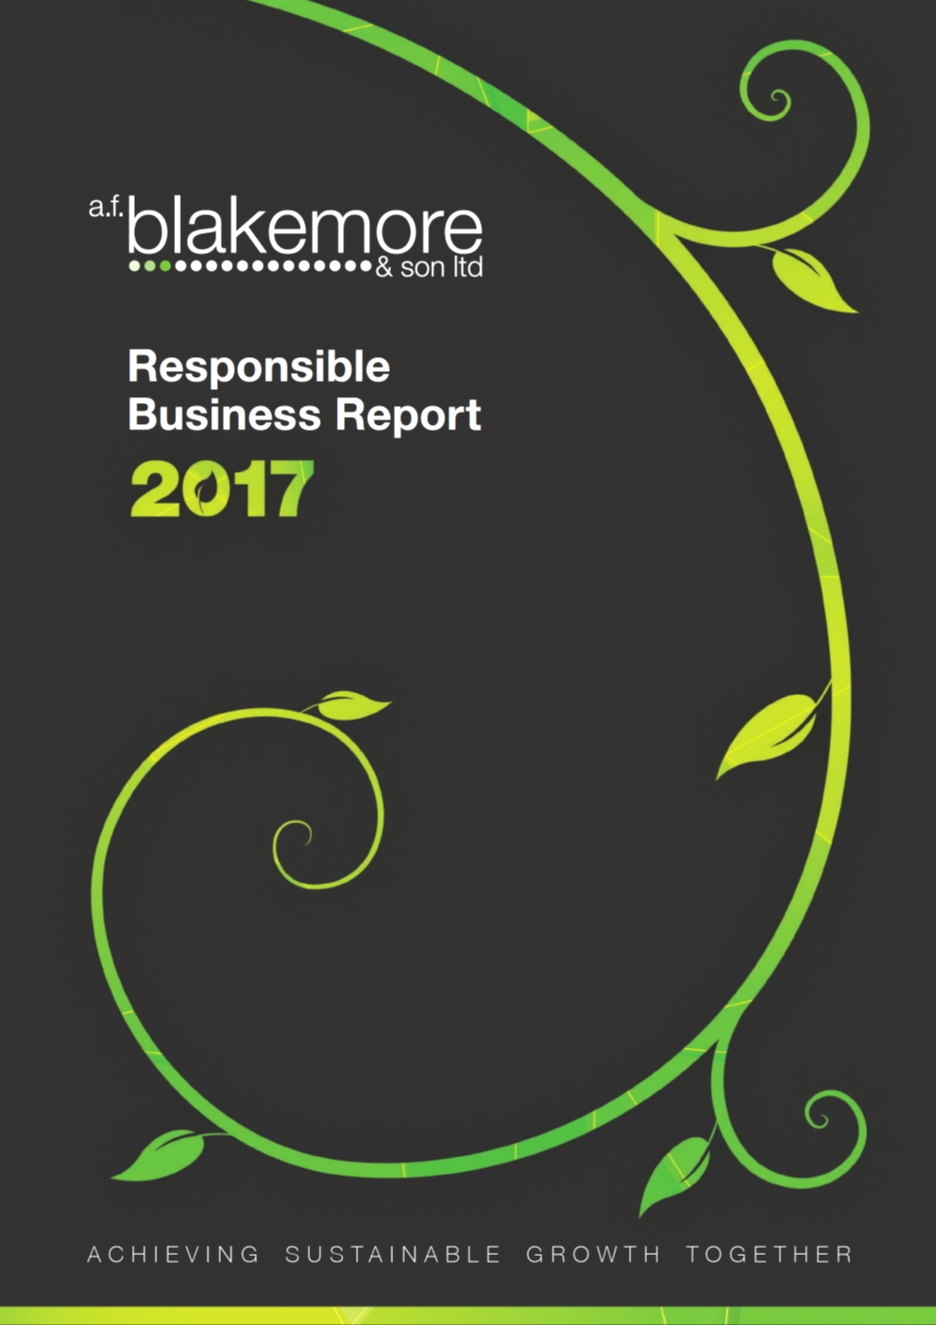 A.F._Blakemore_Son_Ltd_Responsible_Business_Report